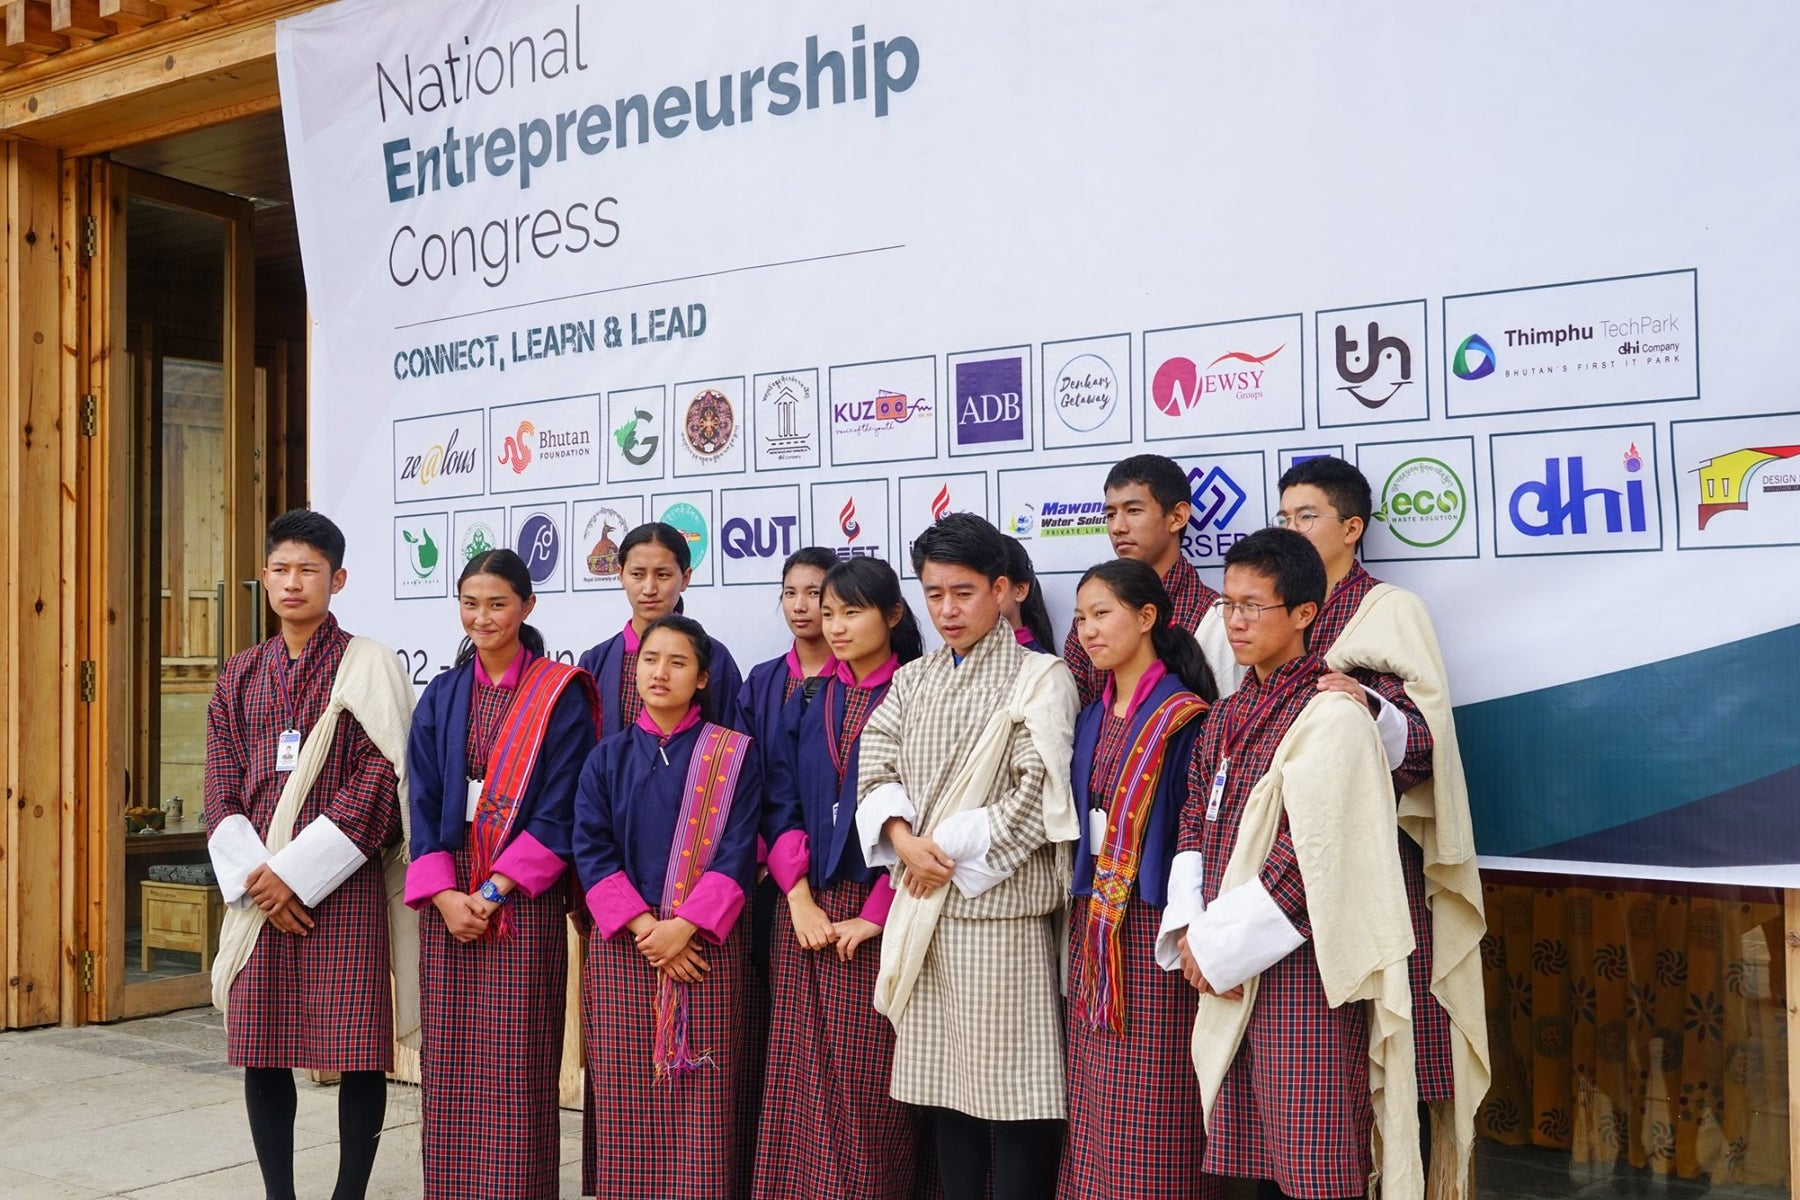 Bhutan National Entrepreneurship congress